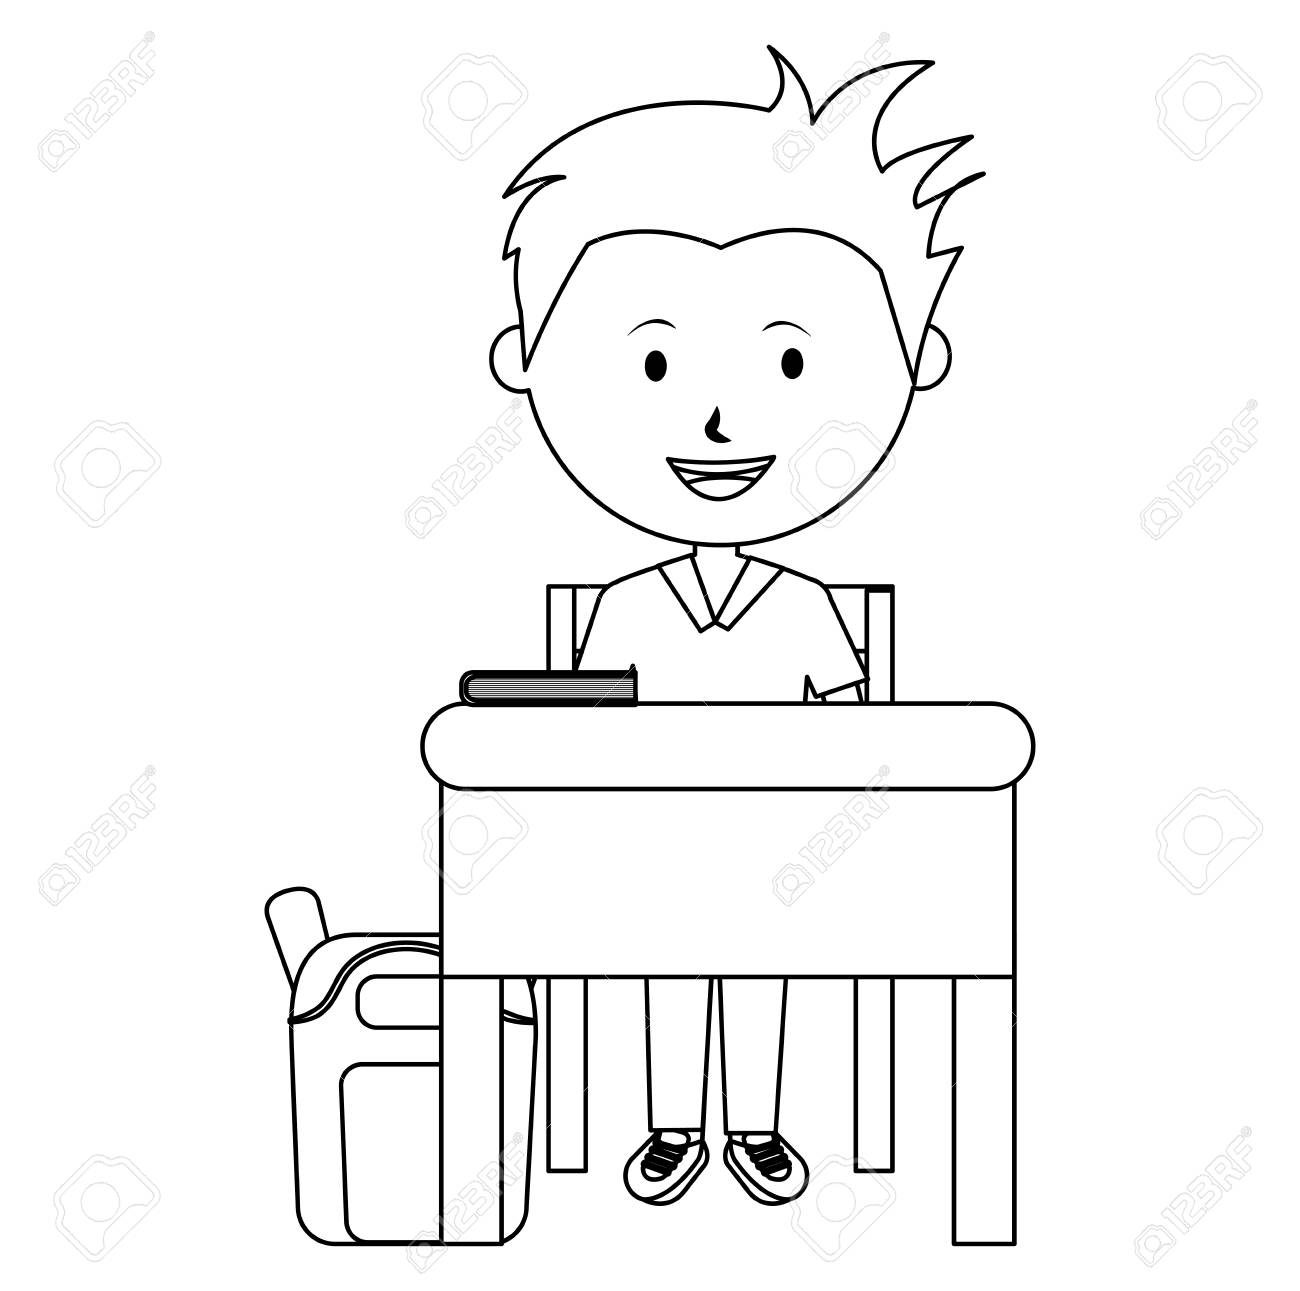 Office Classroom PNG - office-classroom-design office-classroom-cartoon  office-classroom-tables office-classroom-icon. - CleanPNG / KissPNG